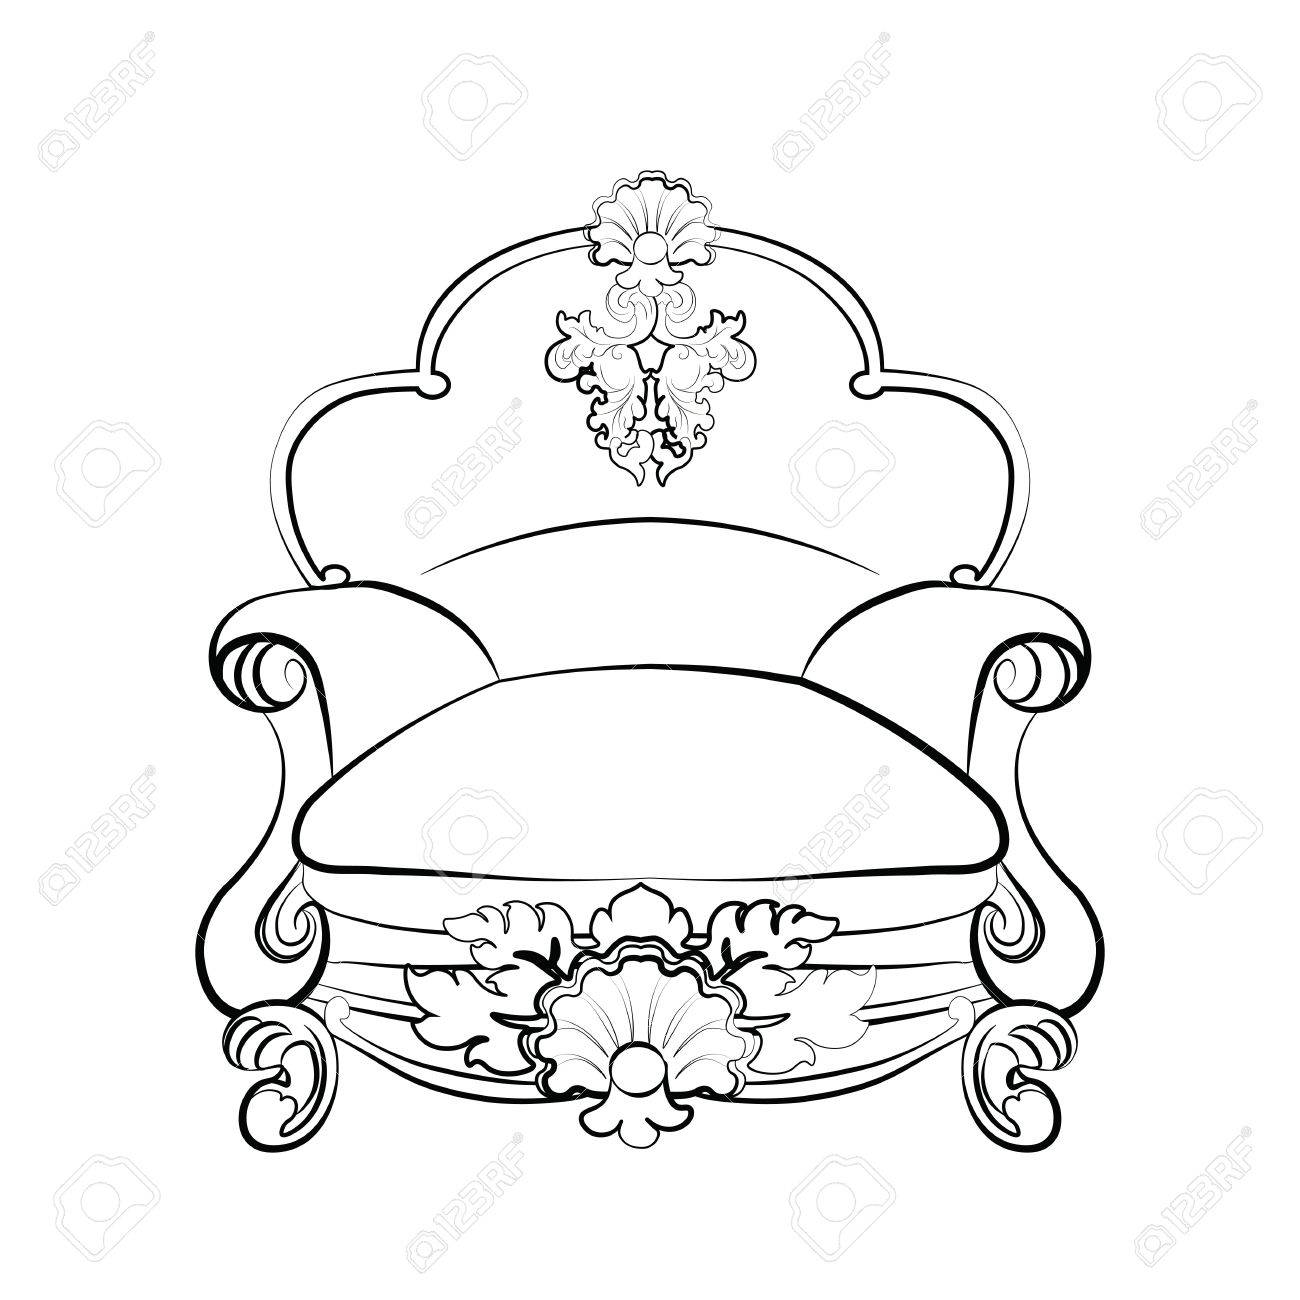 Rococo furniture sketch - Imperial Royal Armchair With Luxurious Rococo Ornaments Vector Sketch Stock Vector 58419508